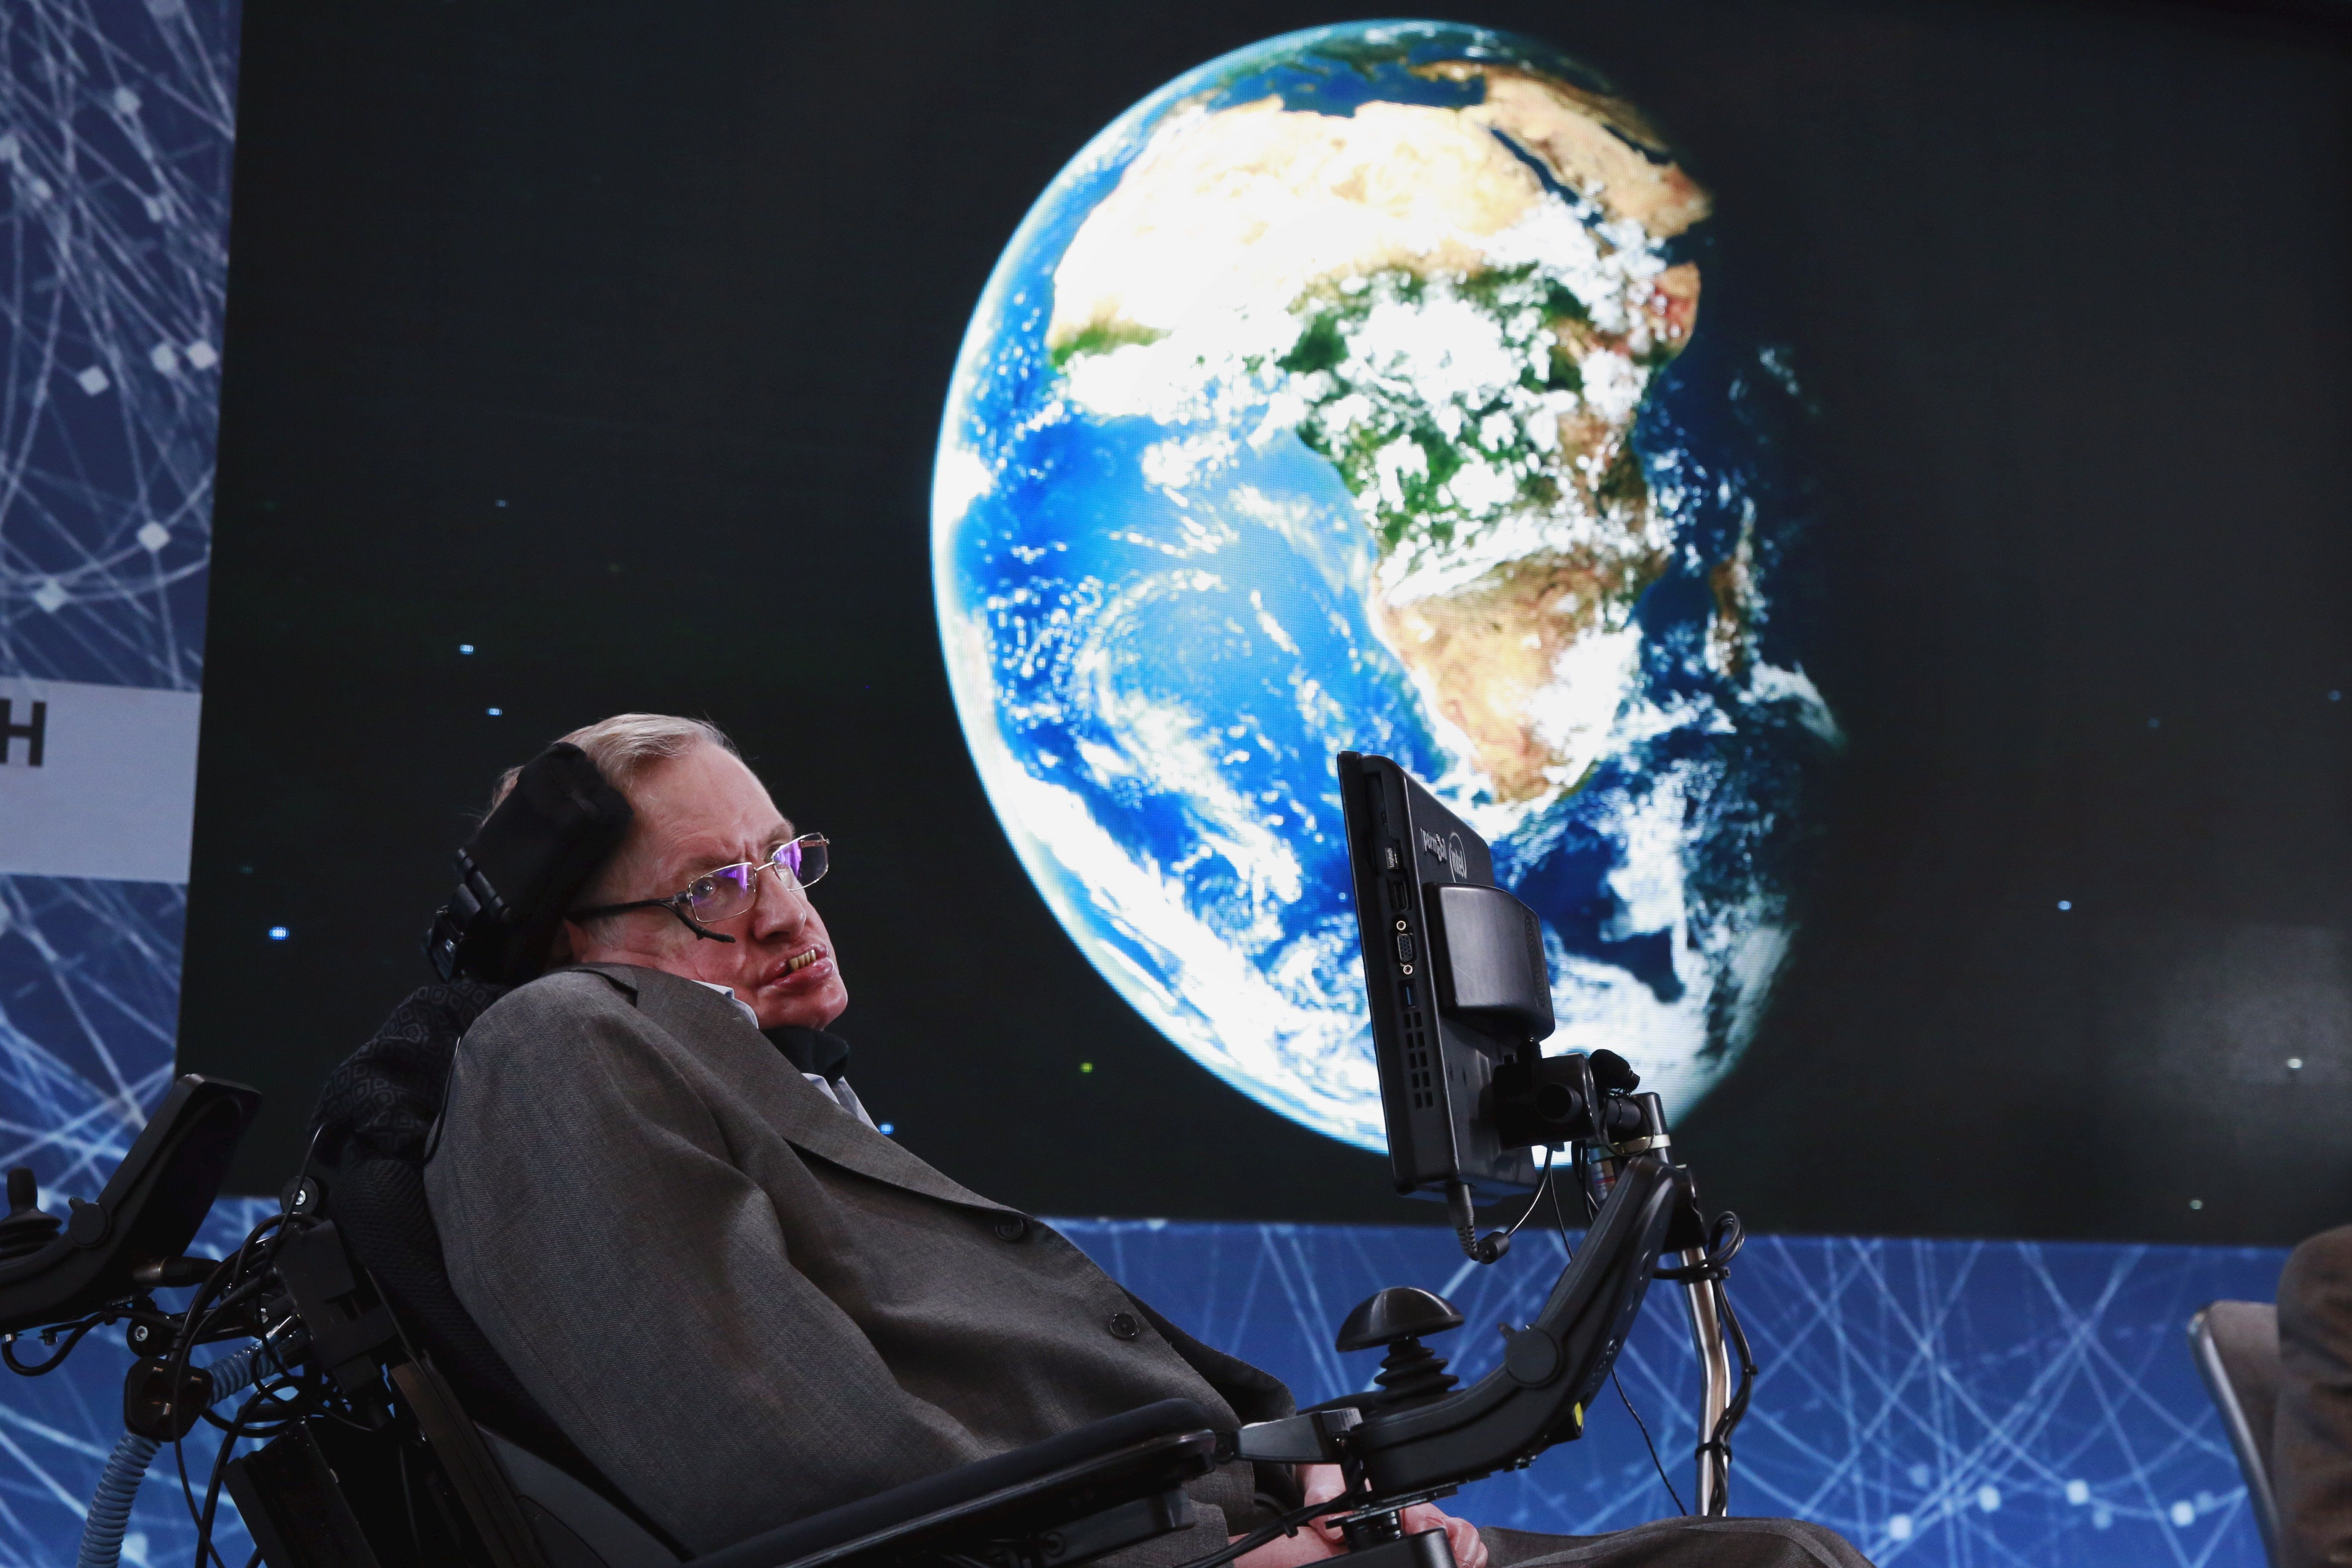 Stephen Hawking's Theories On Everything (Other Than Physics): Killer Robots, NHS And